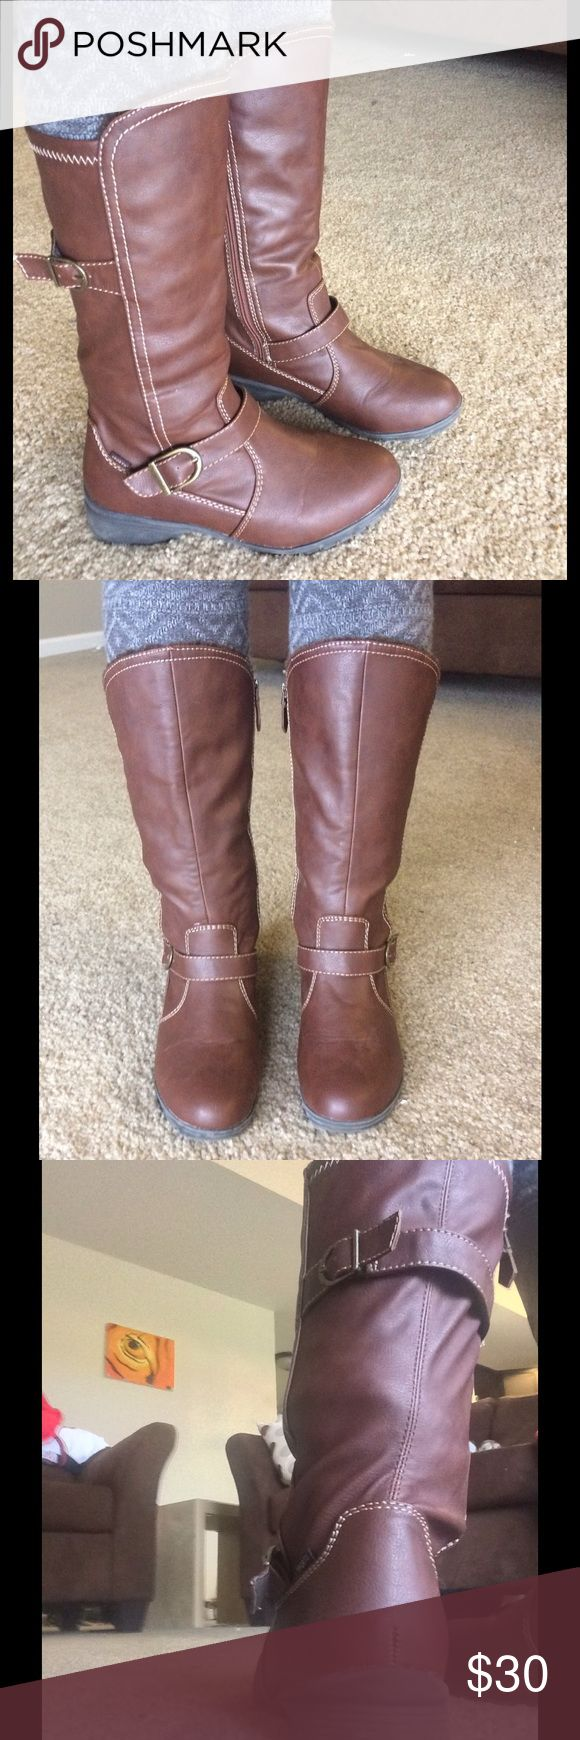 Sporto boots Sports boots with rubber soles, no obvious damage. Brown with riding style buckles, perfect for winter! Faux fur lining on the front inside sporto Shoes Winter & Rain Boots